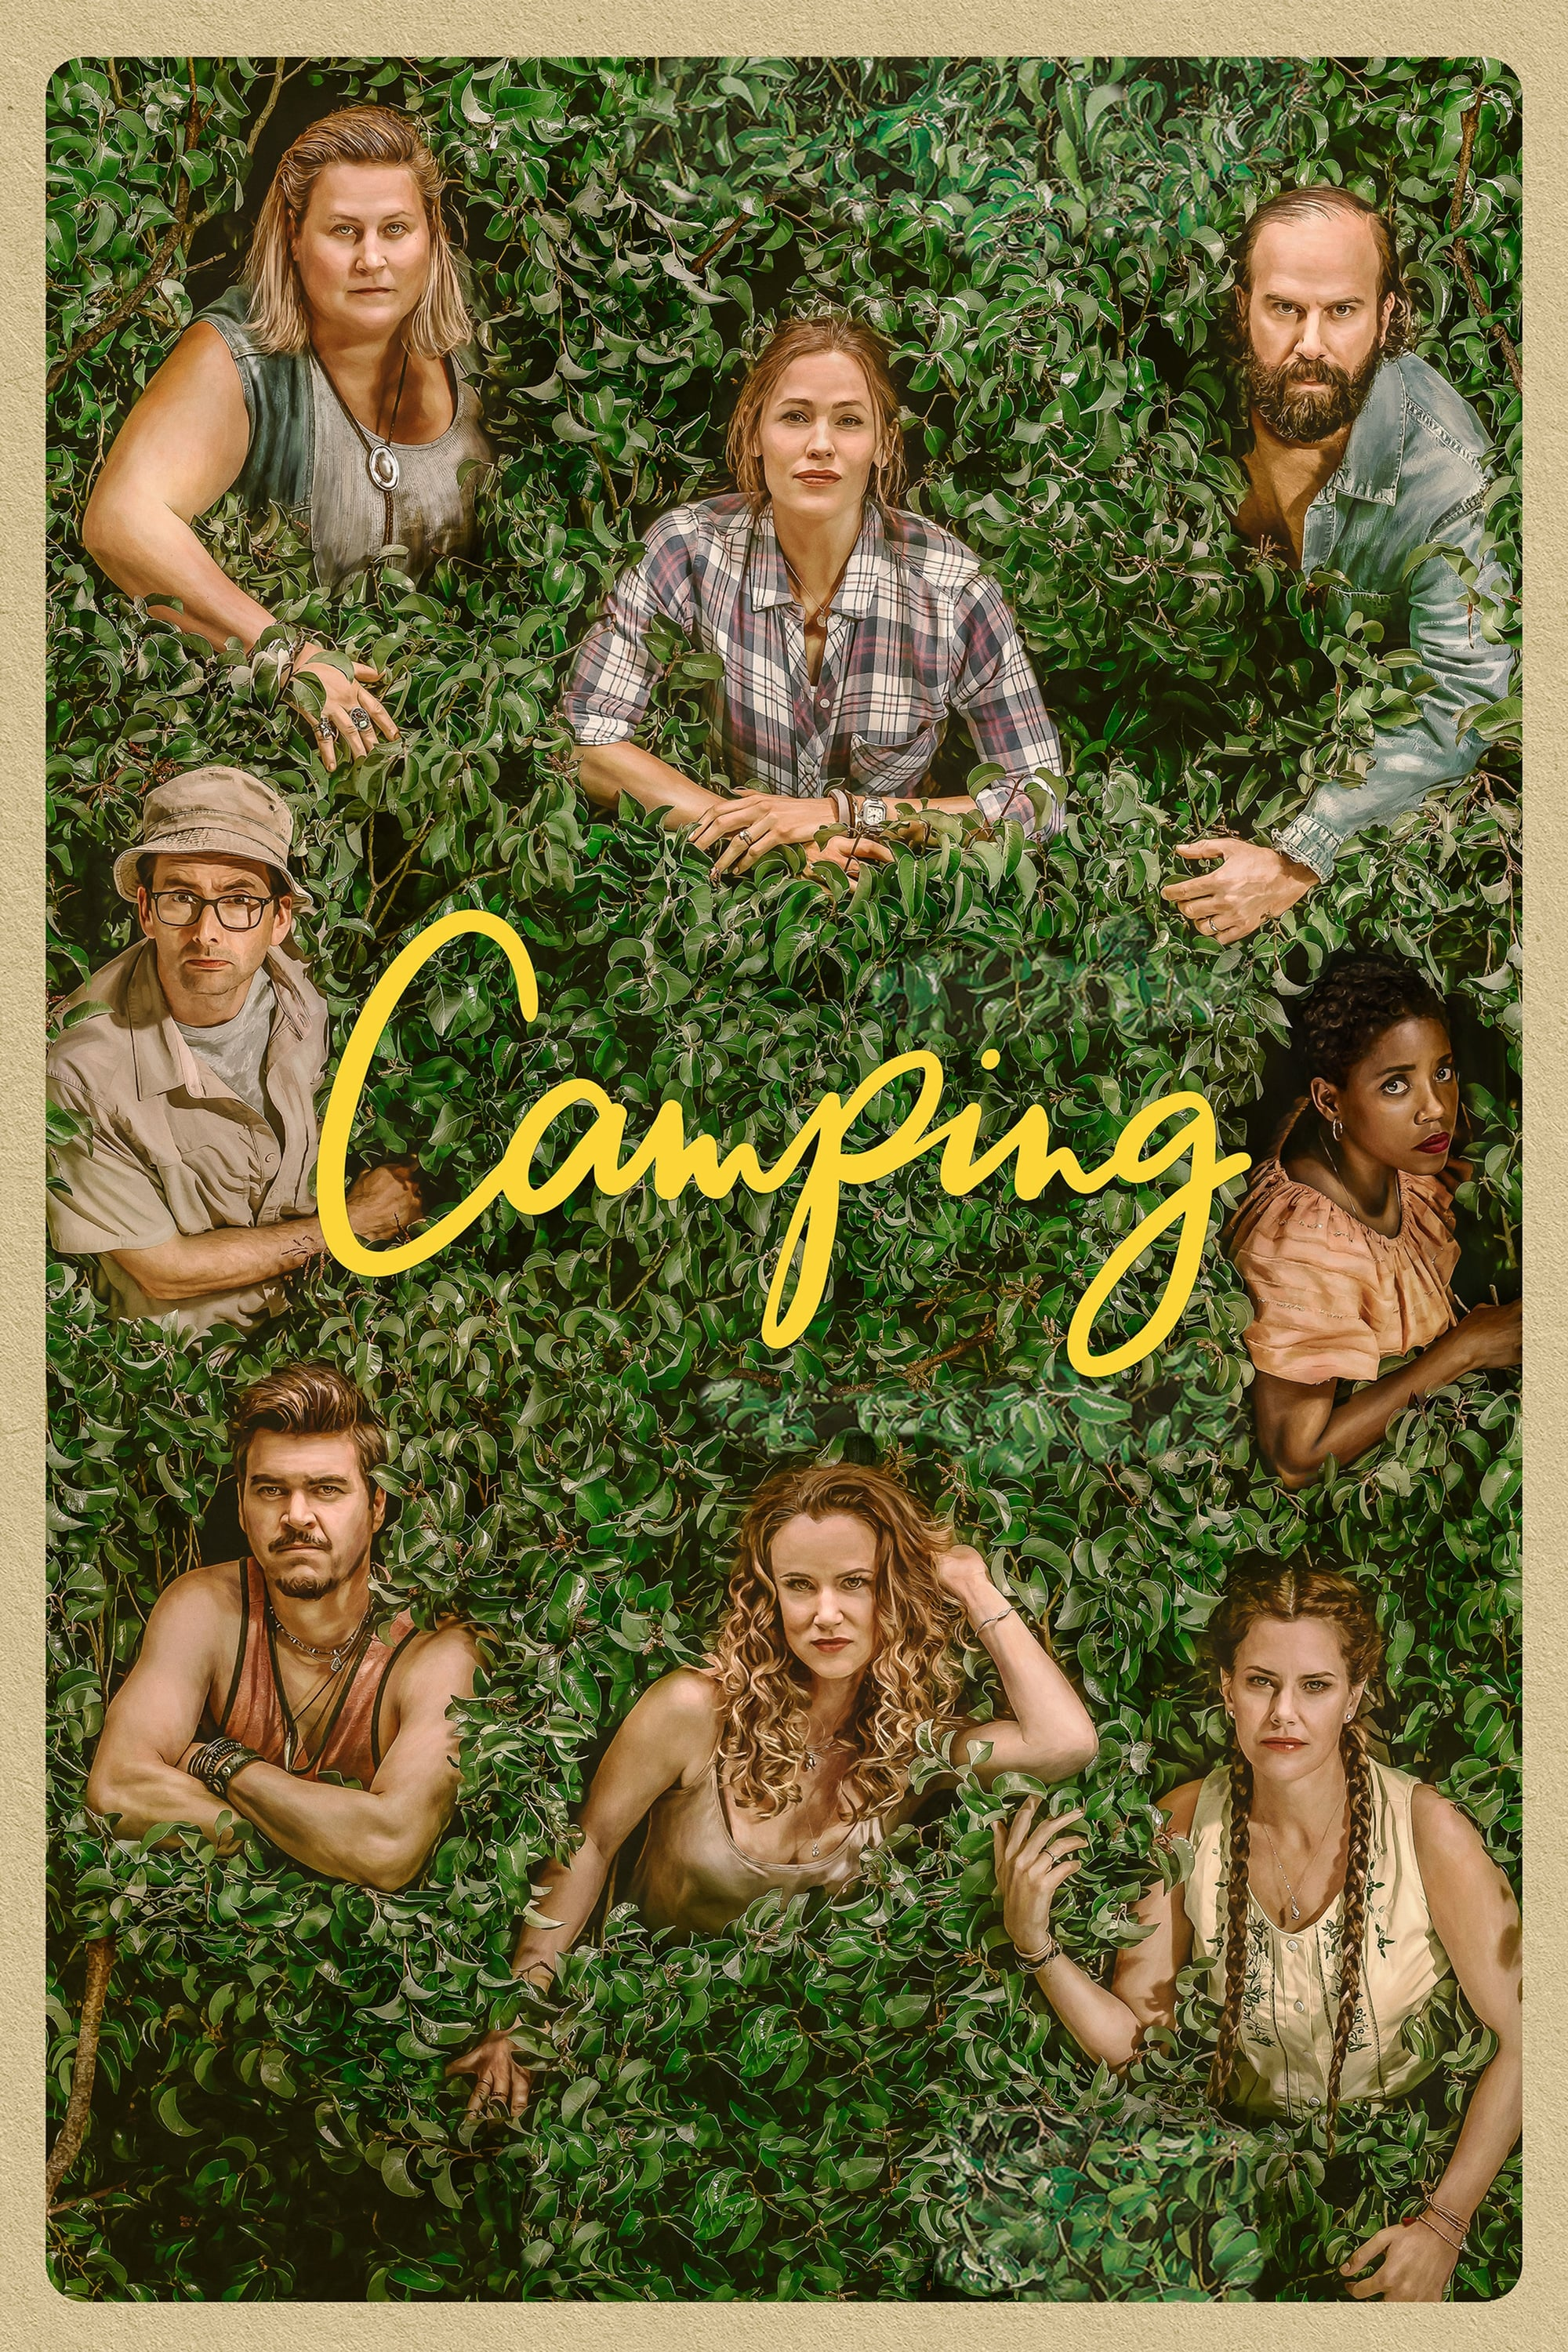 image for Camping